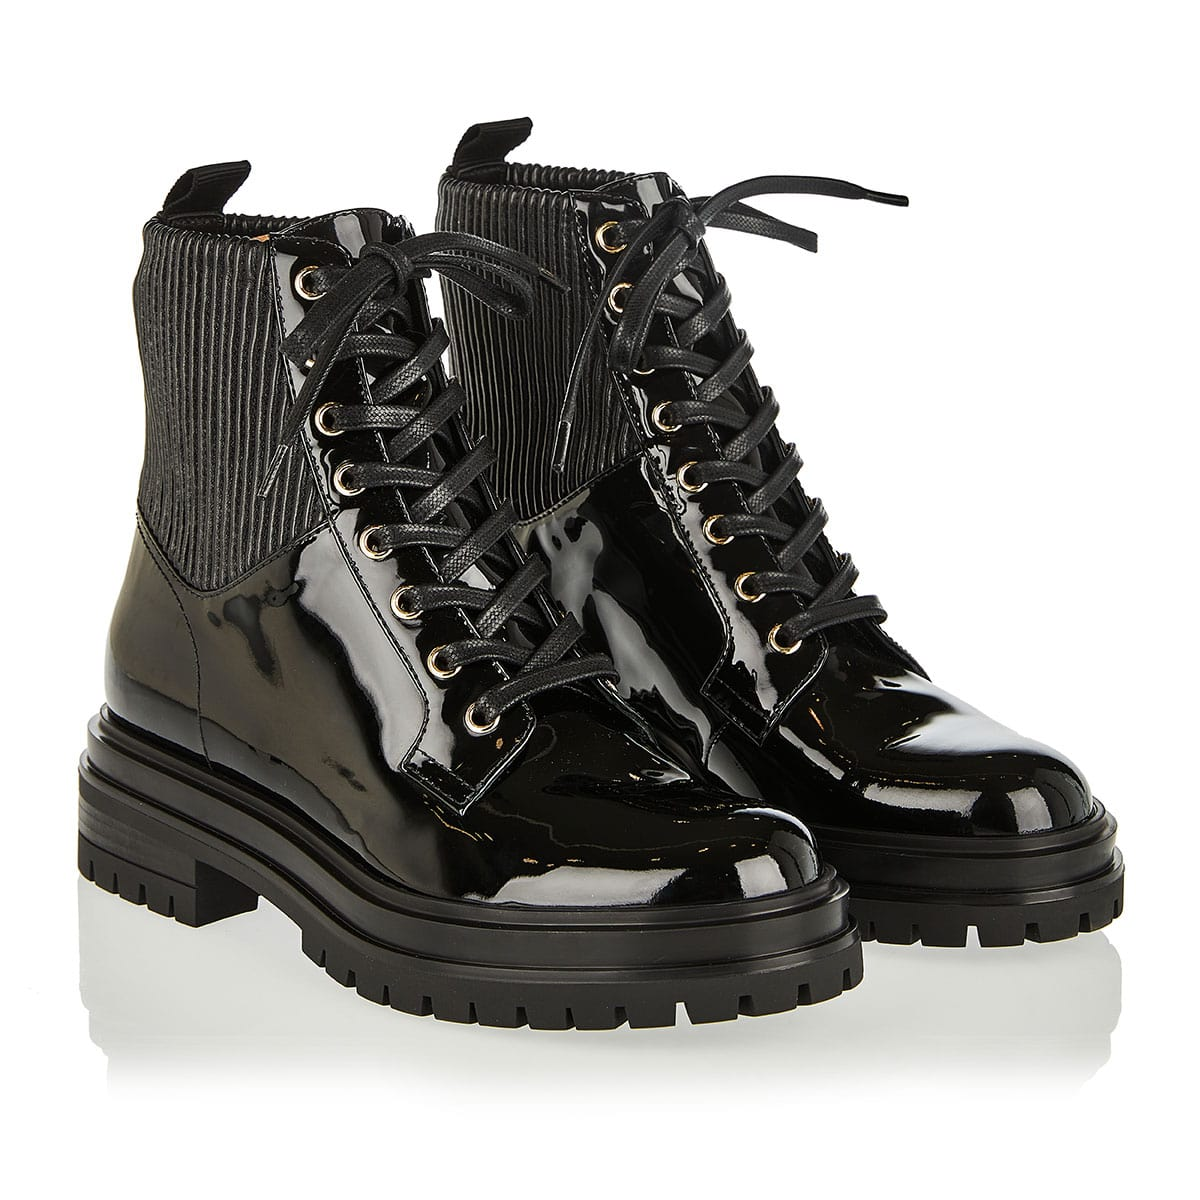 Martis 20 lace-up patent boots